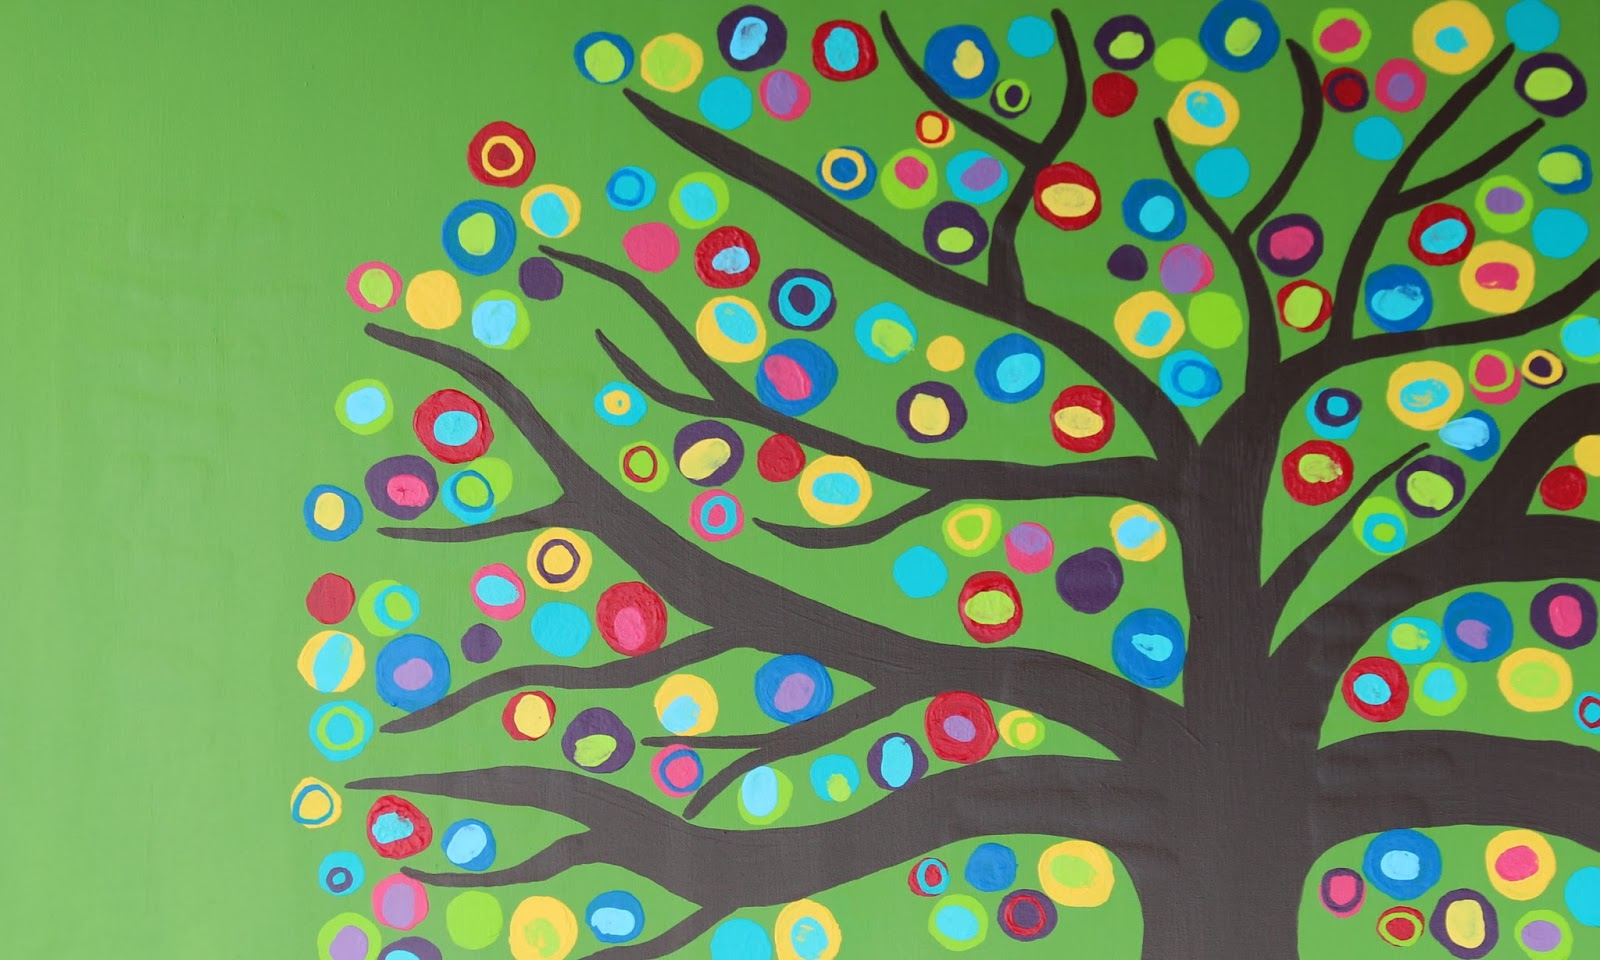 abstract tree hd wallpapers - photo #8